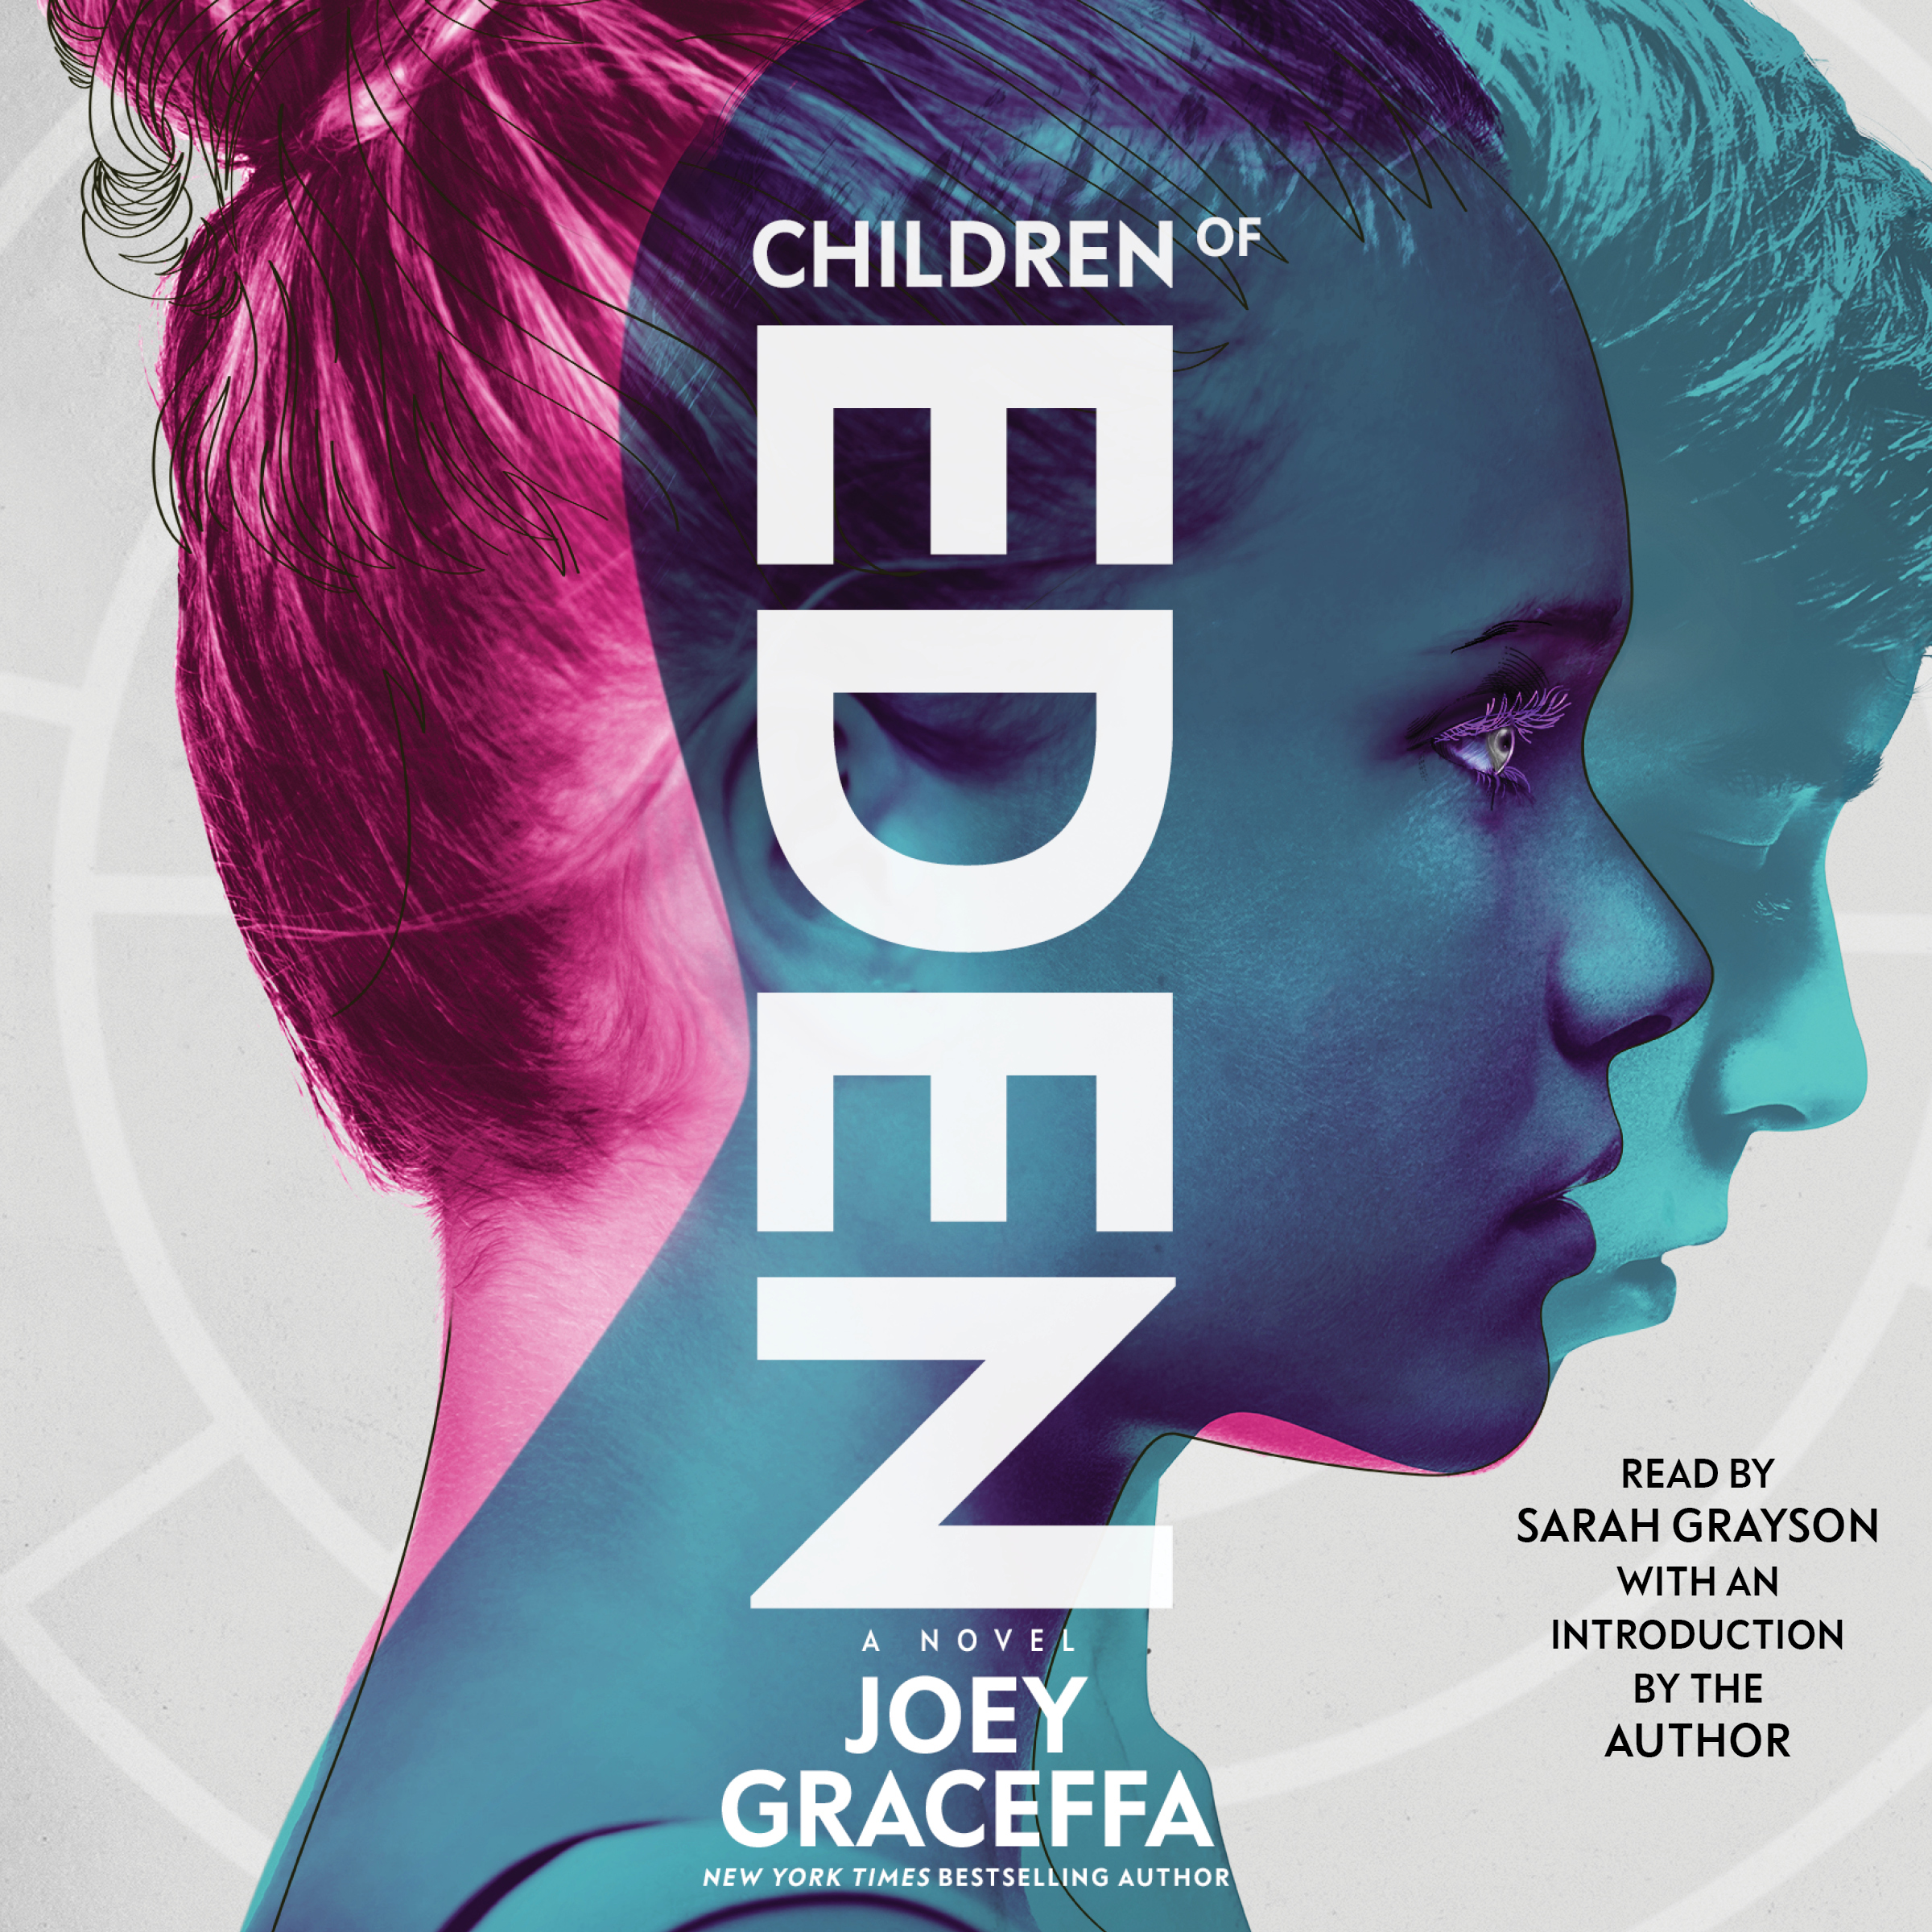 Children Of Eden Book Cover ~ Children of eden audiobook by joey graceffa sarah grayson